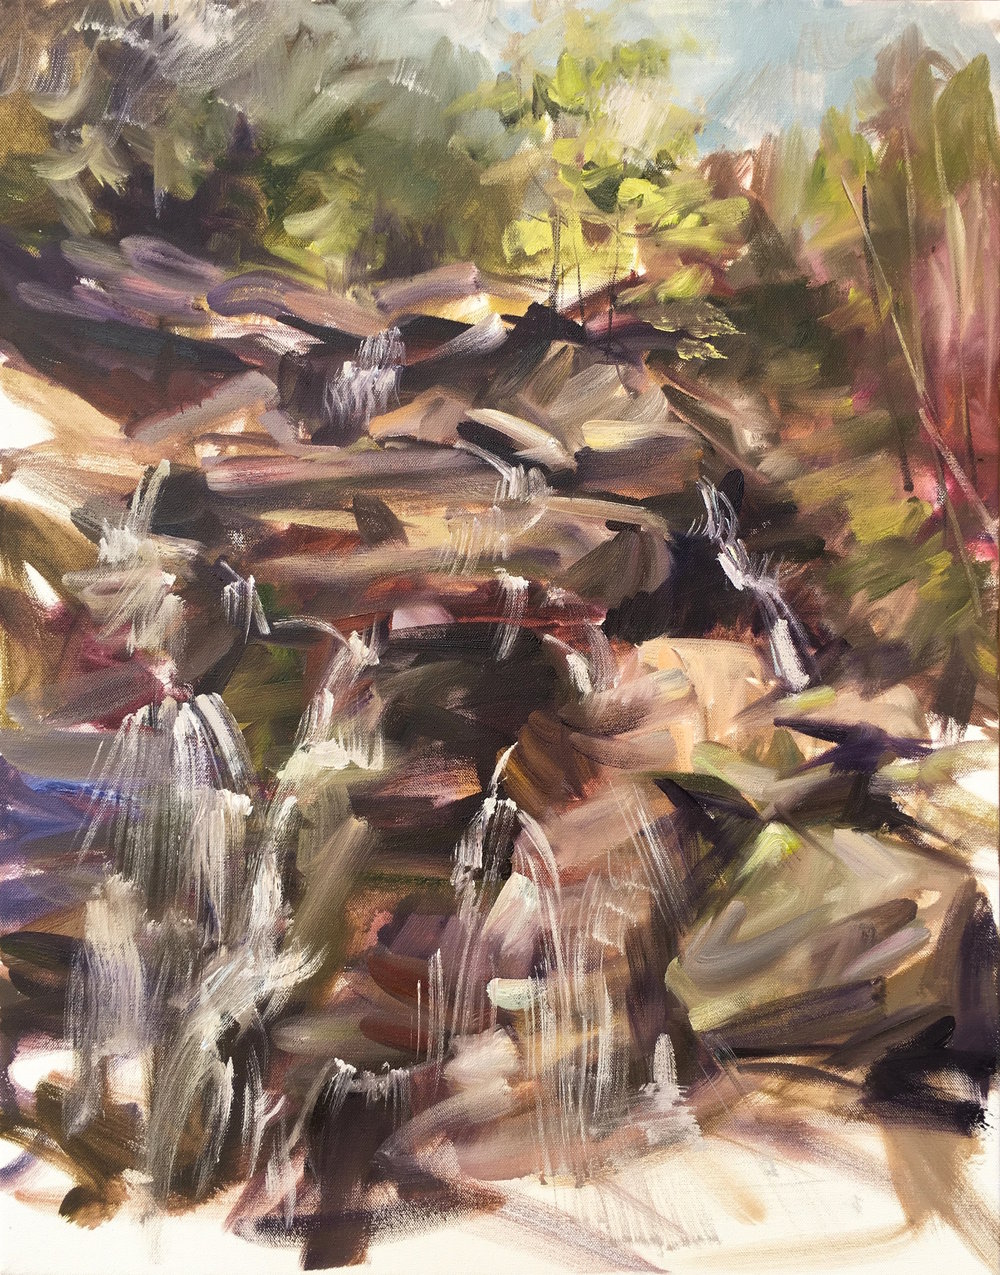 Base of Kaaterskill Falls, Catskills